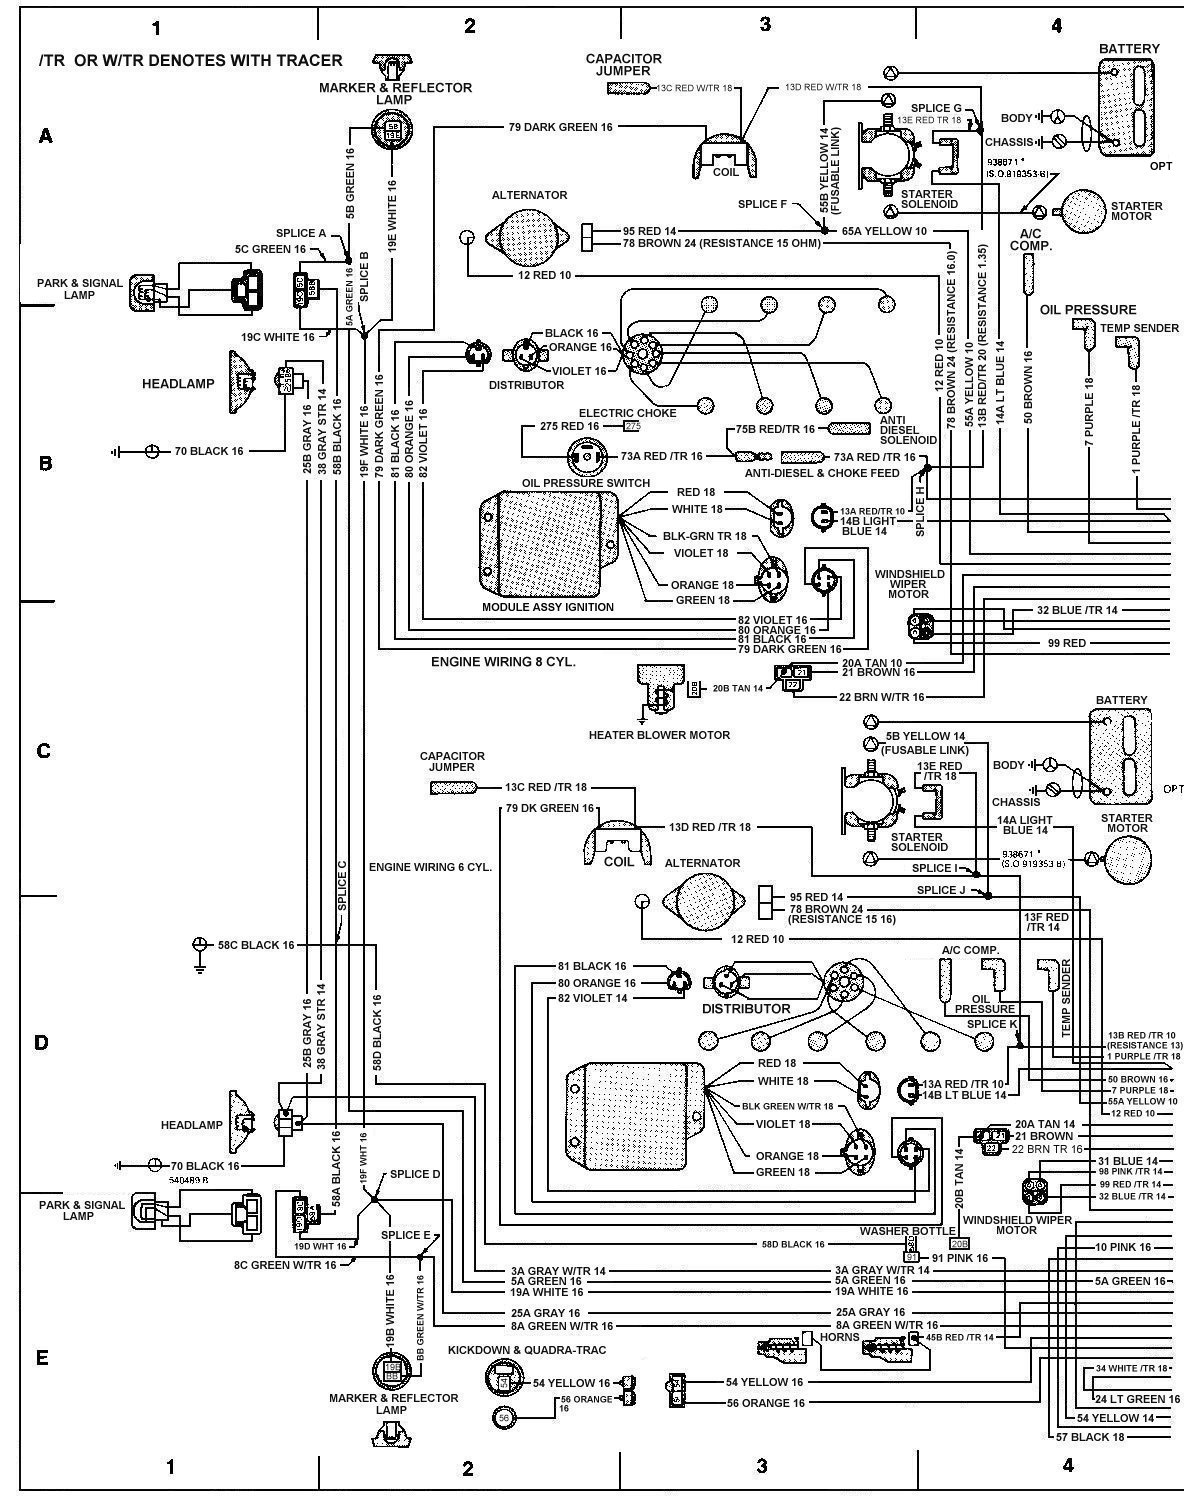 1982 Jeep J 20 Ignition Wiring Diagram Wiring Diagram Explained A Explained A Led Illumina It